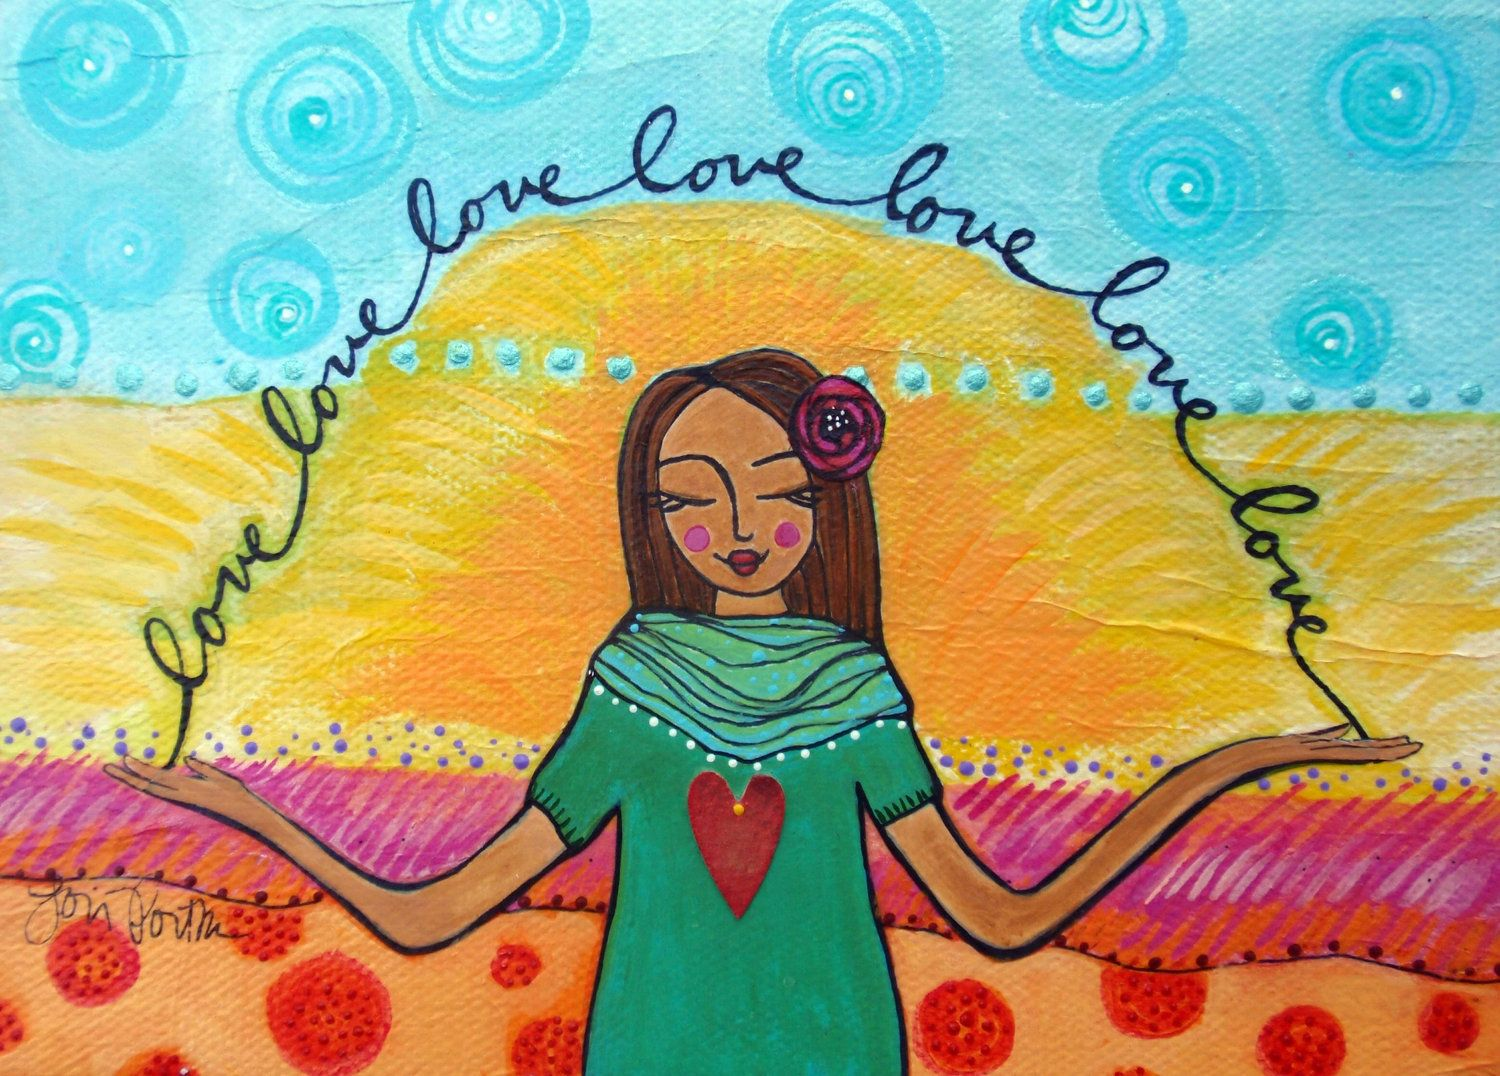 This print hangs in my studio as a daily reminder to choose love :: by Lori Portka